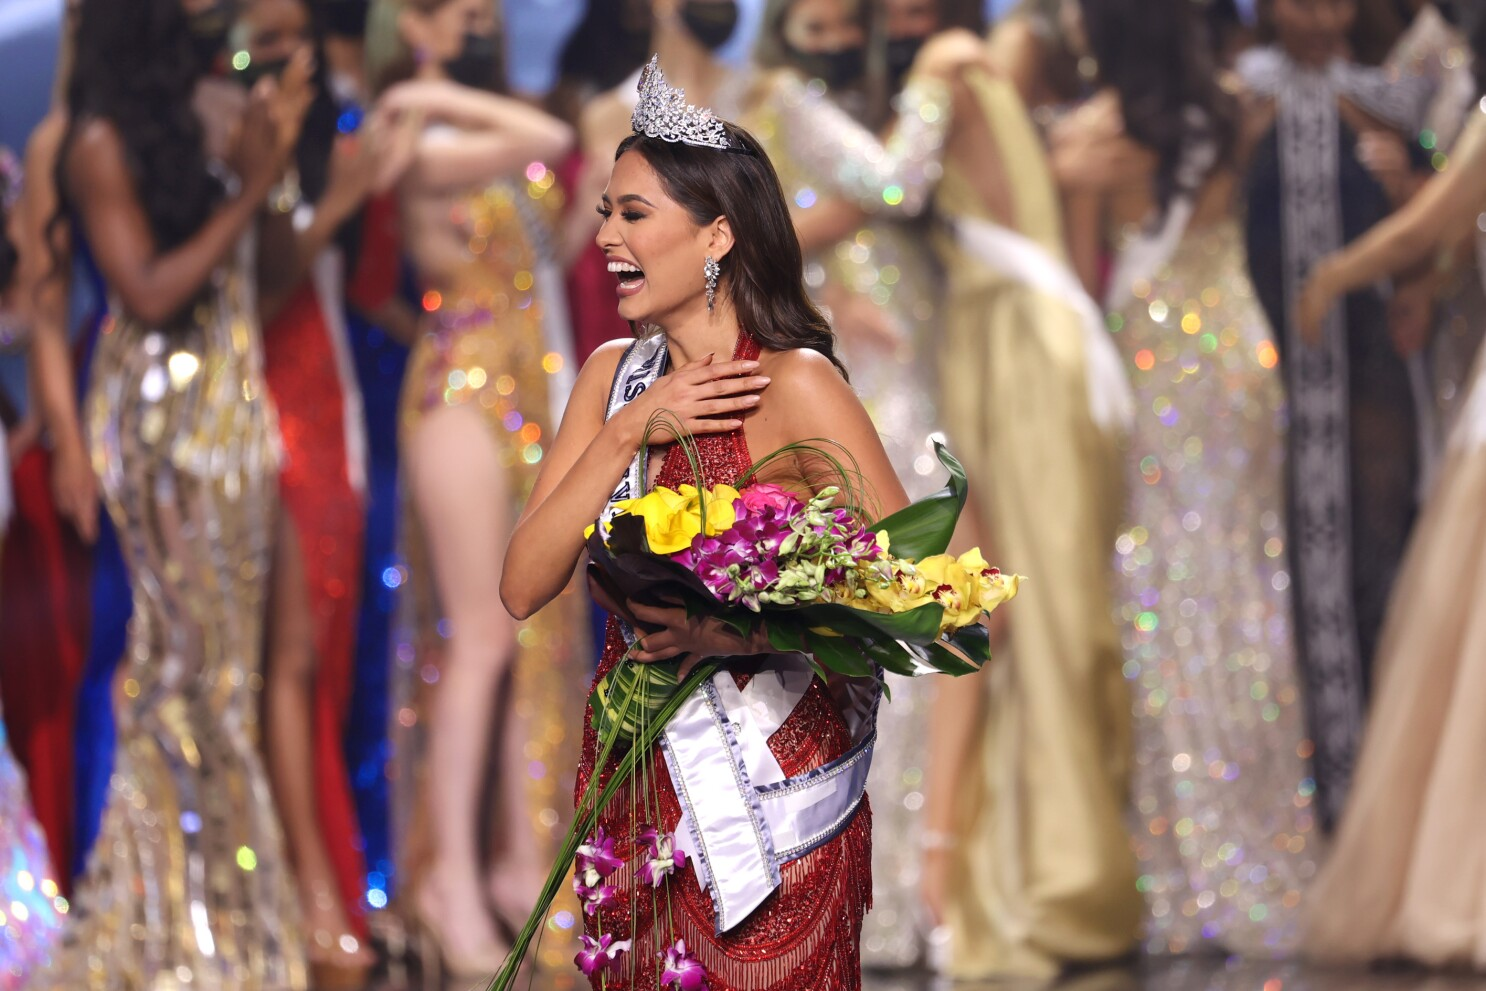 Andrea Meza of Mexico crowned 69th Miss Universe - The San Diego Union-Tribune